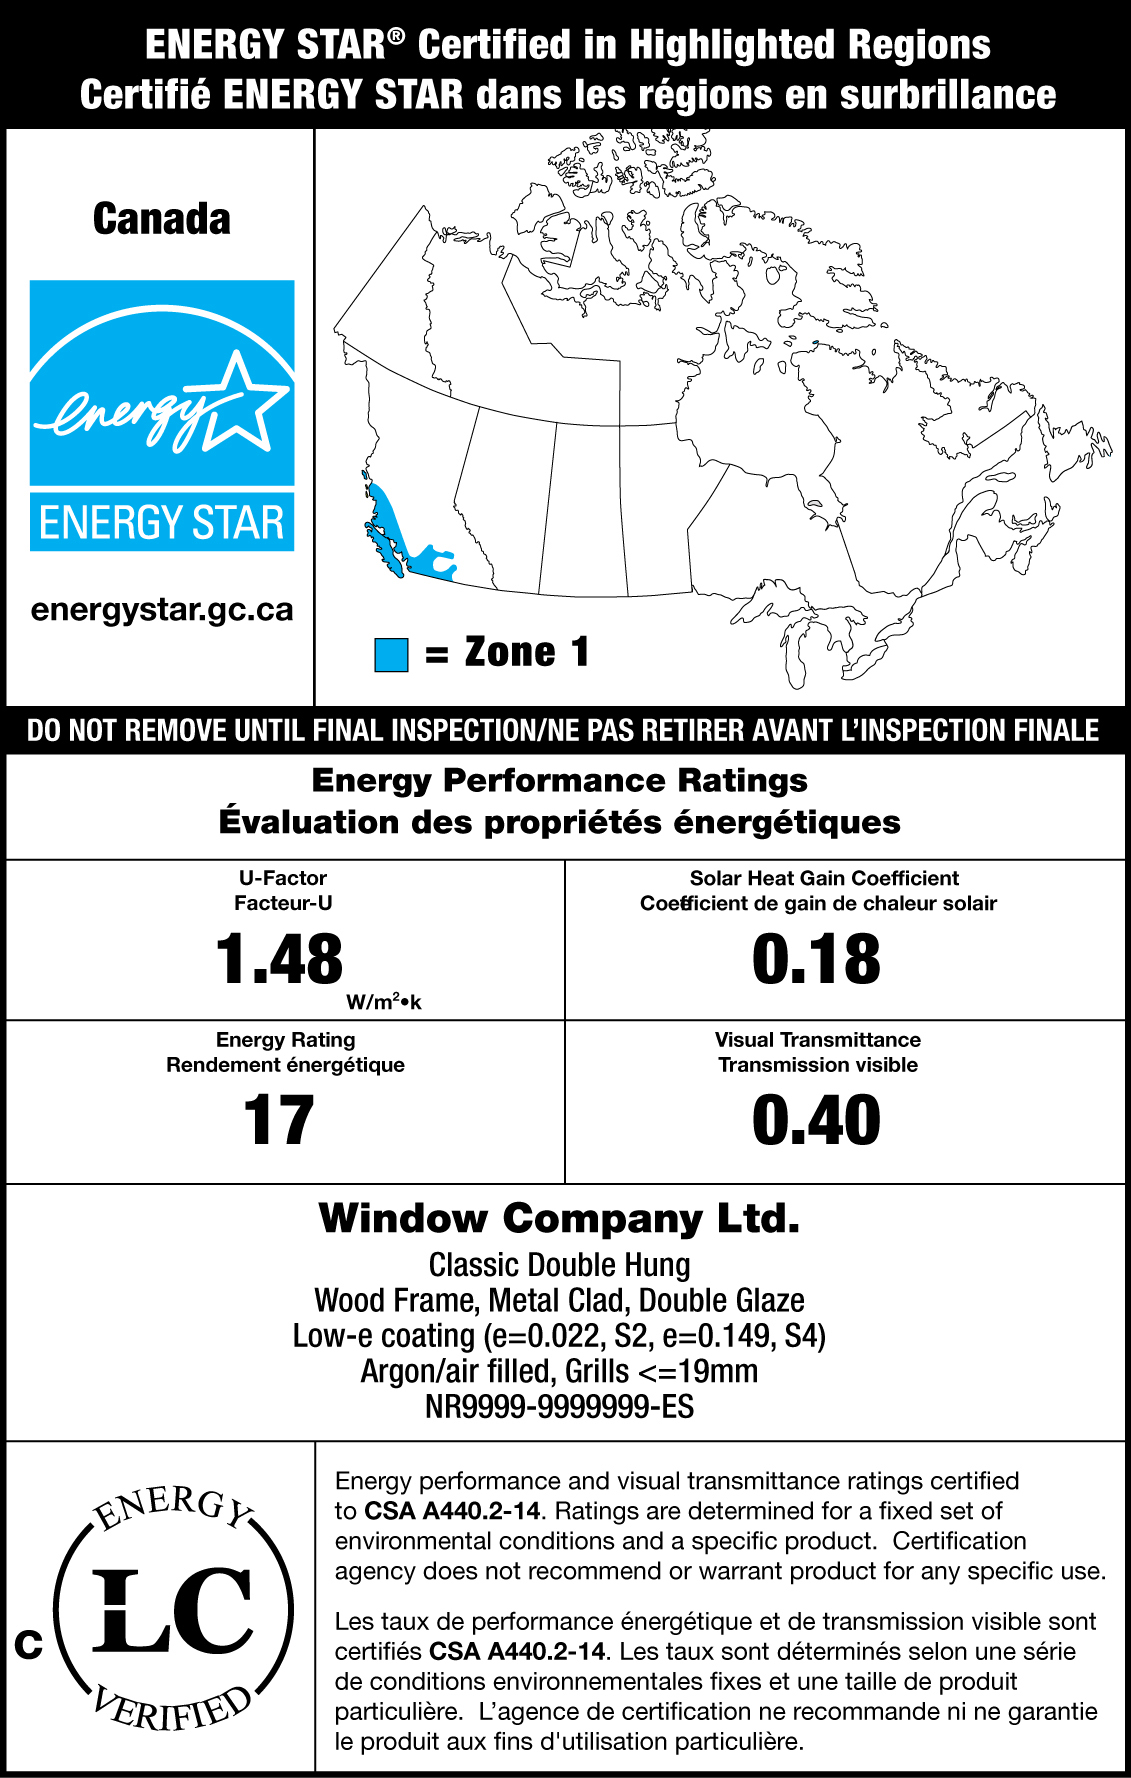 sample energy star label canada map with the energy performance label and certification mark labtest